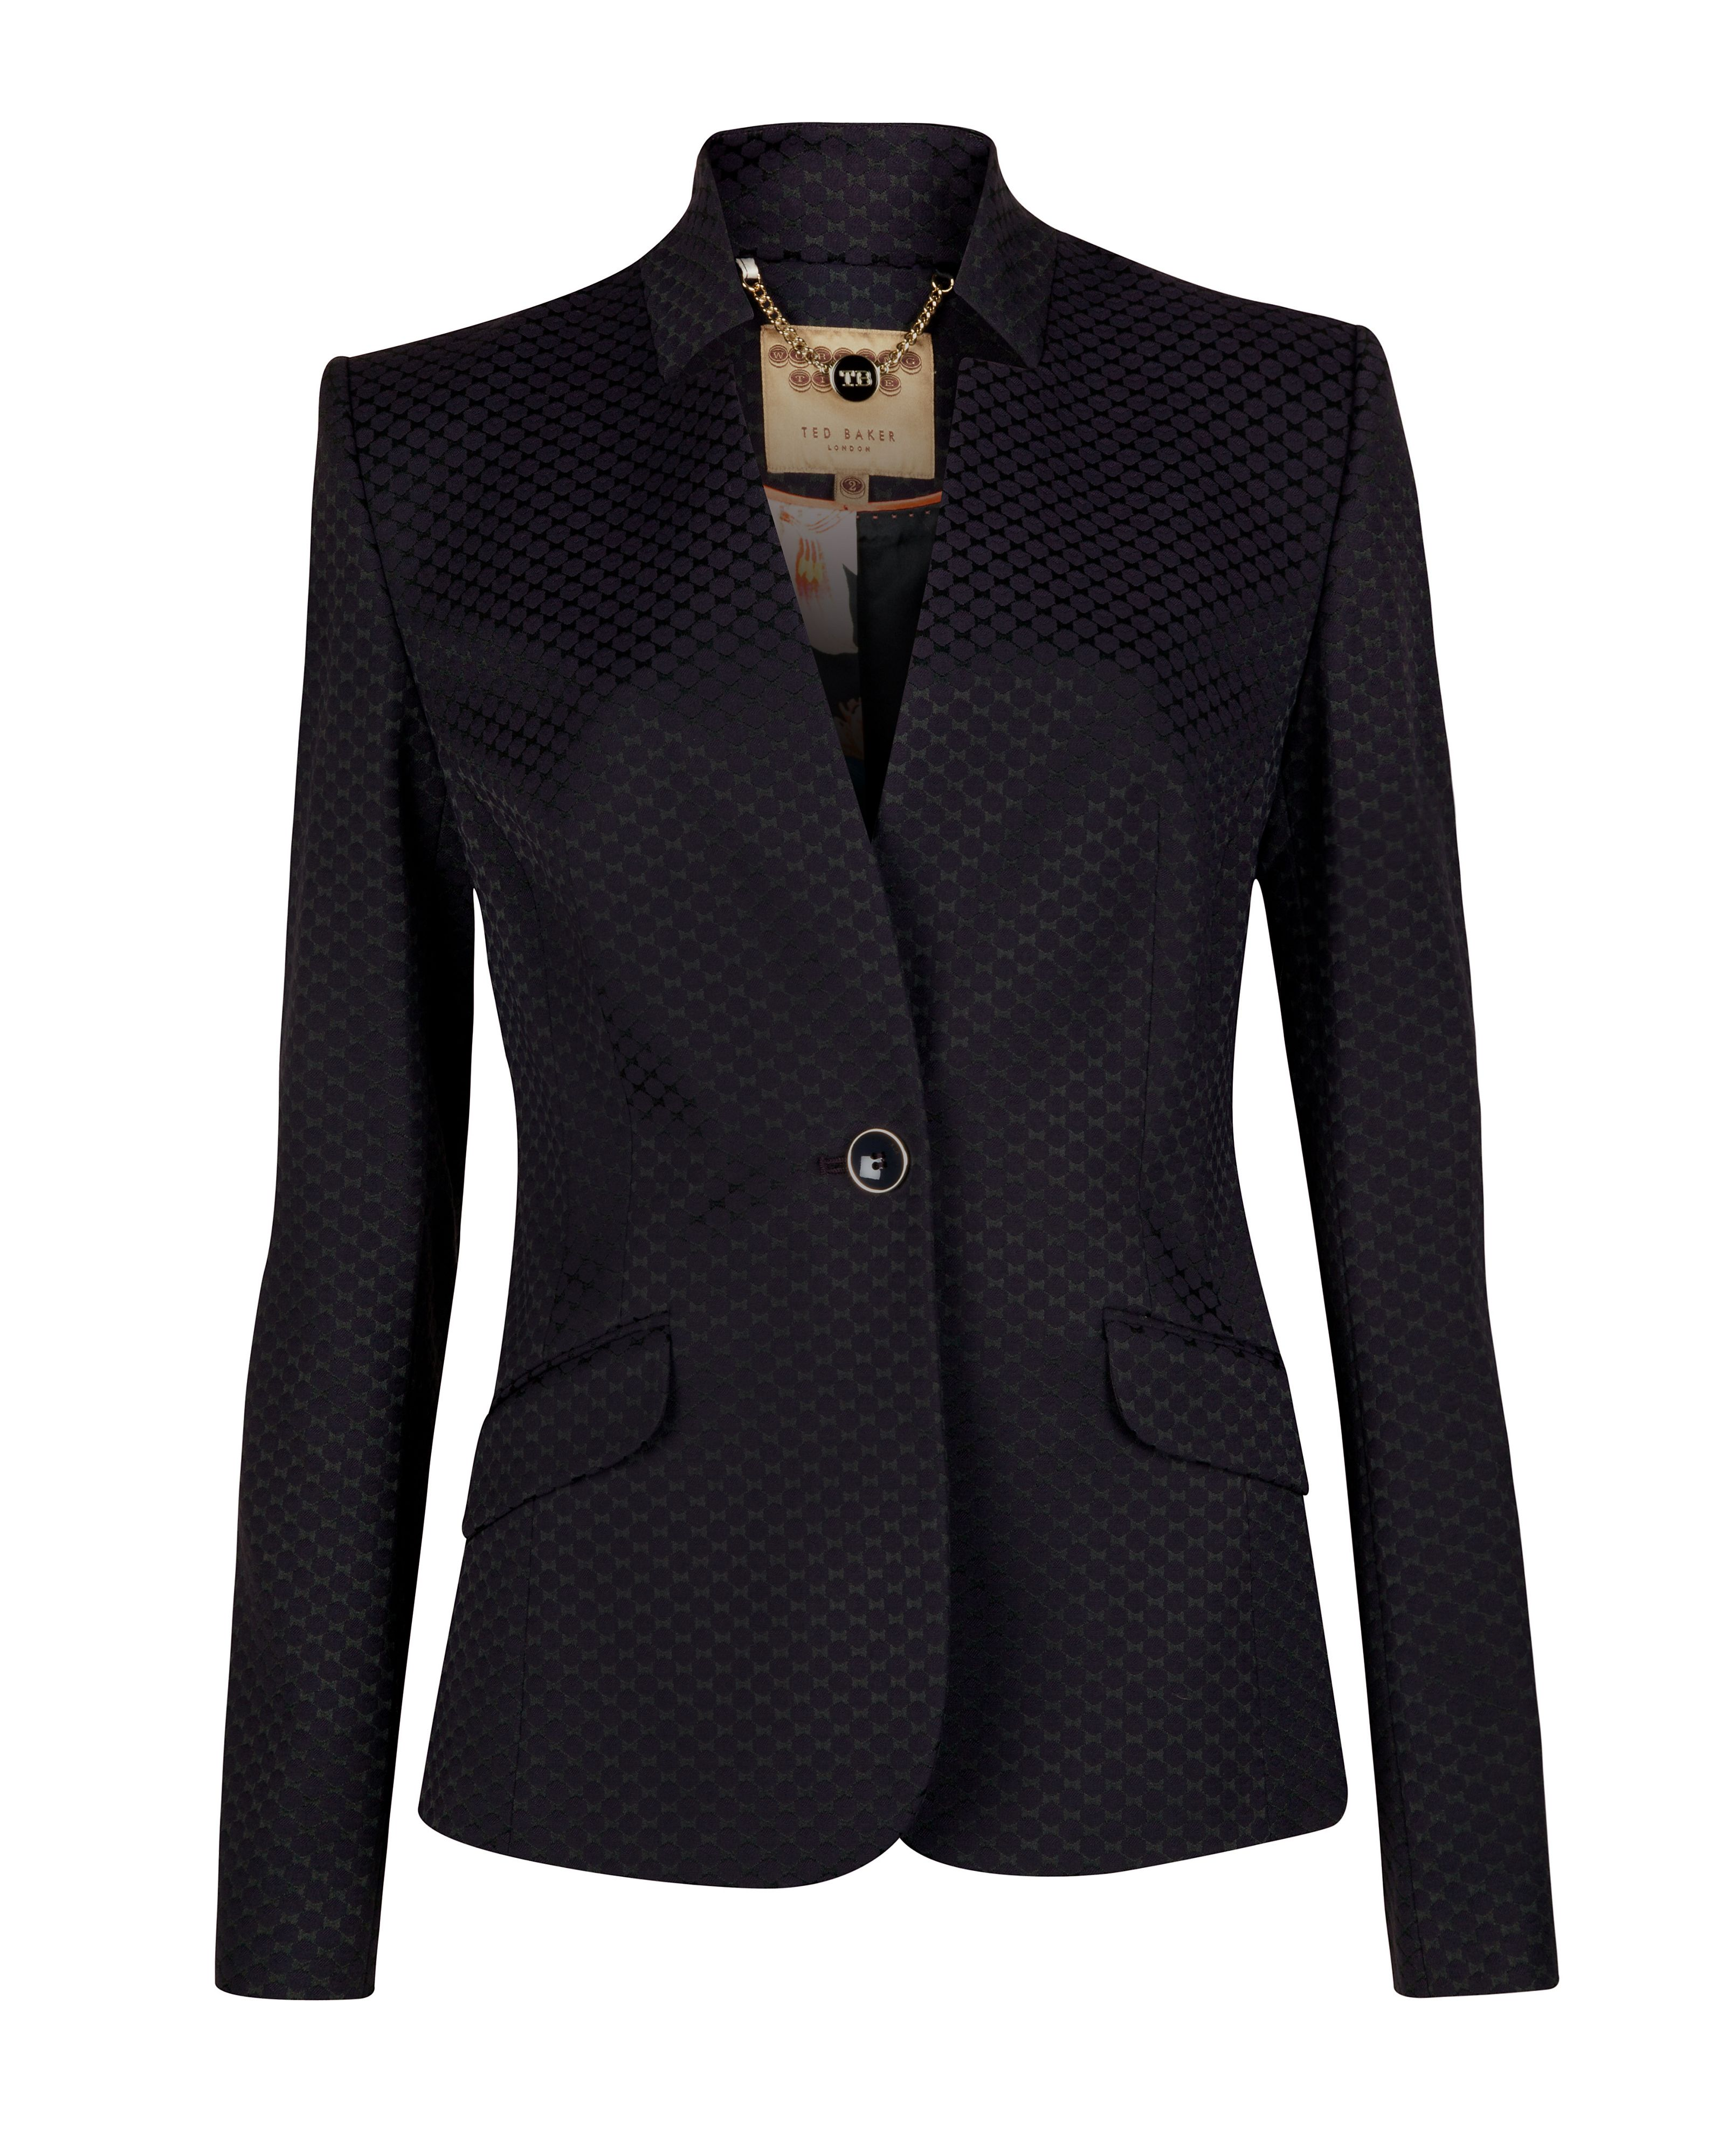 Daseaj diamond jacquard jacket